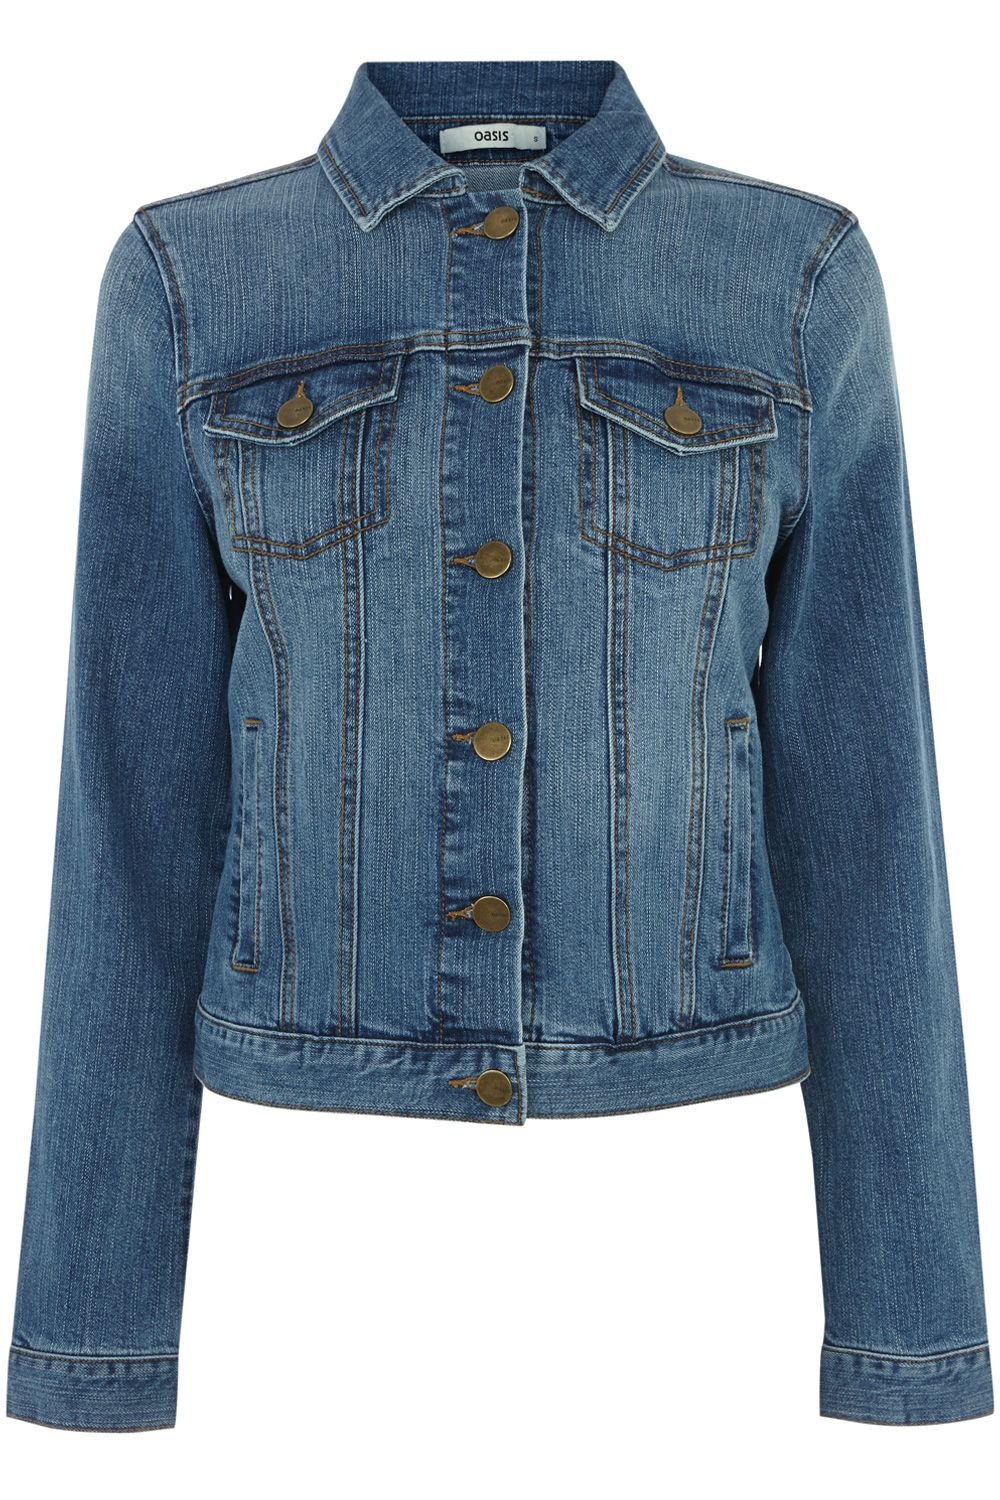 Carly mid wash denim jacket